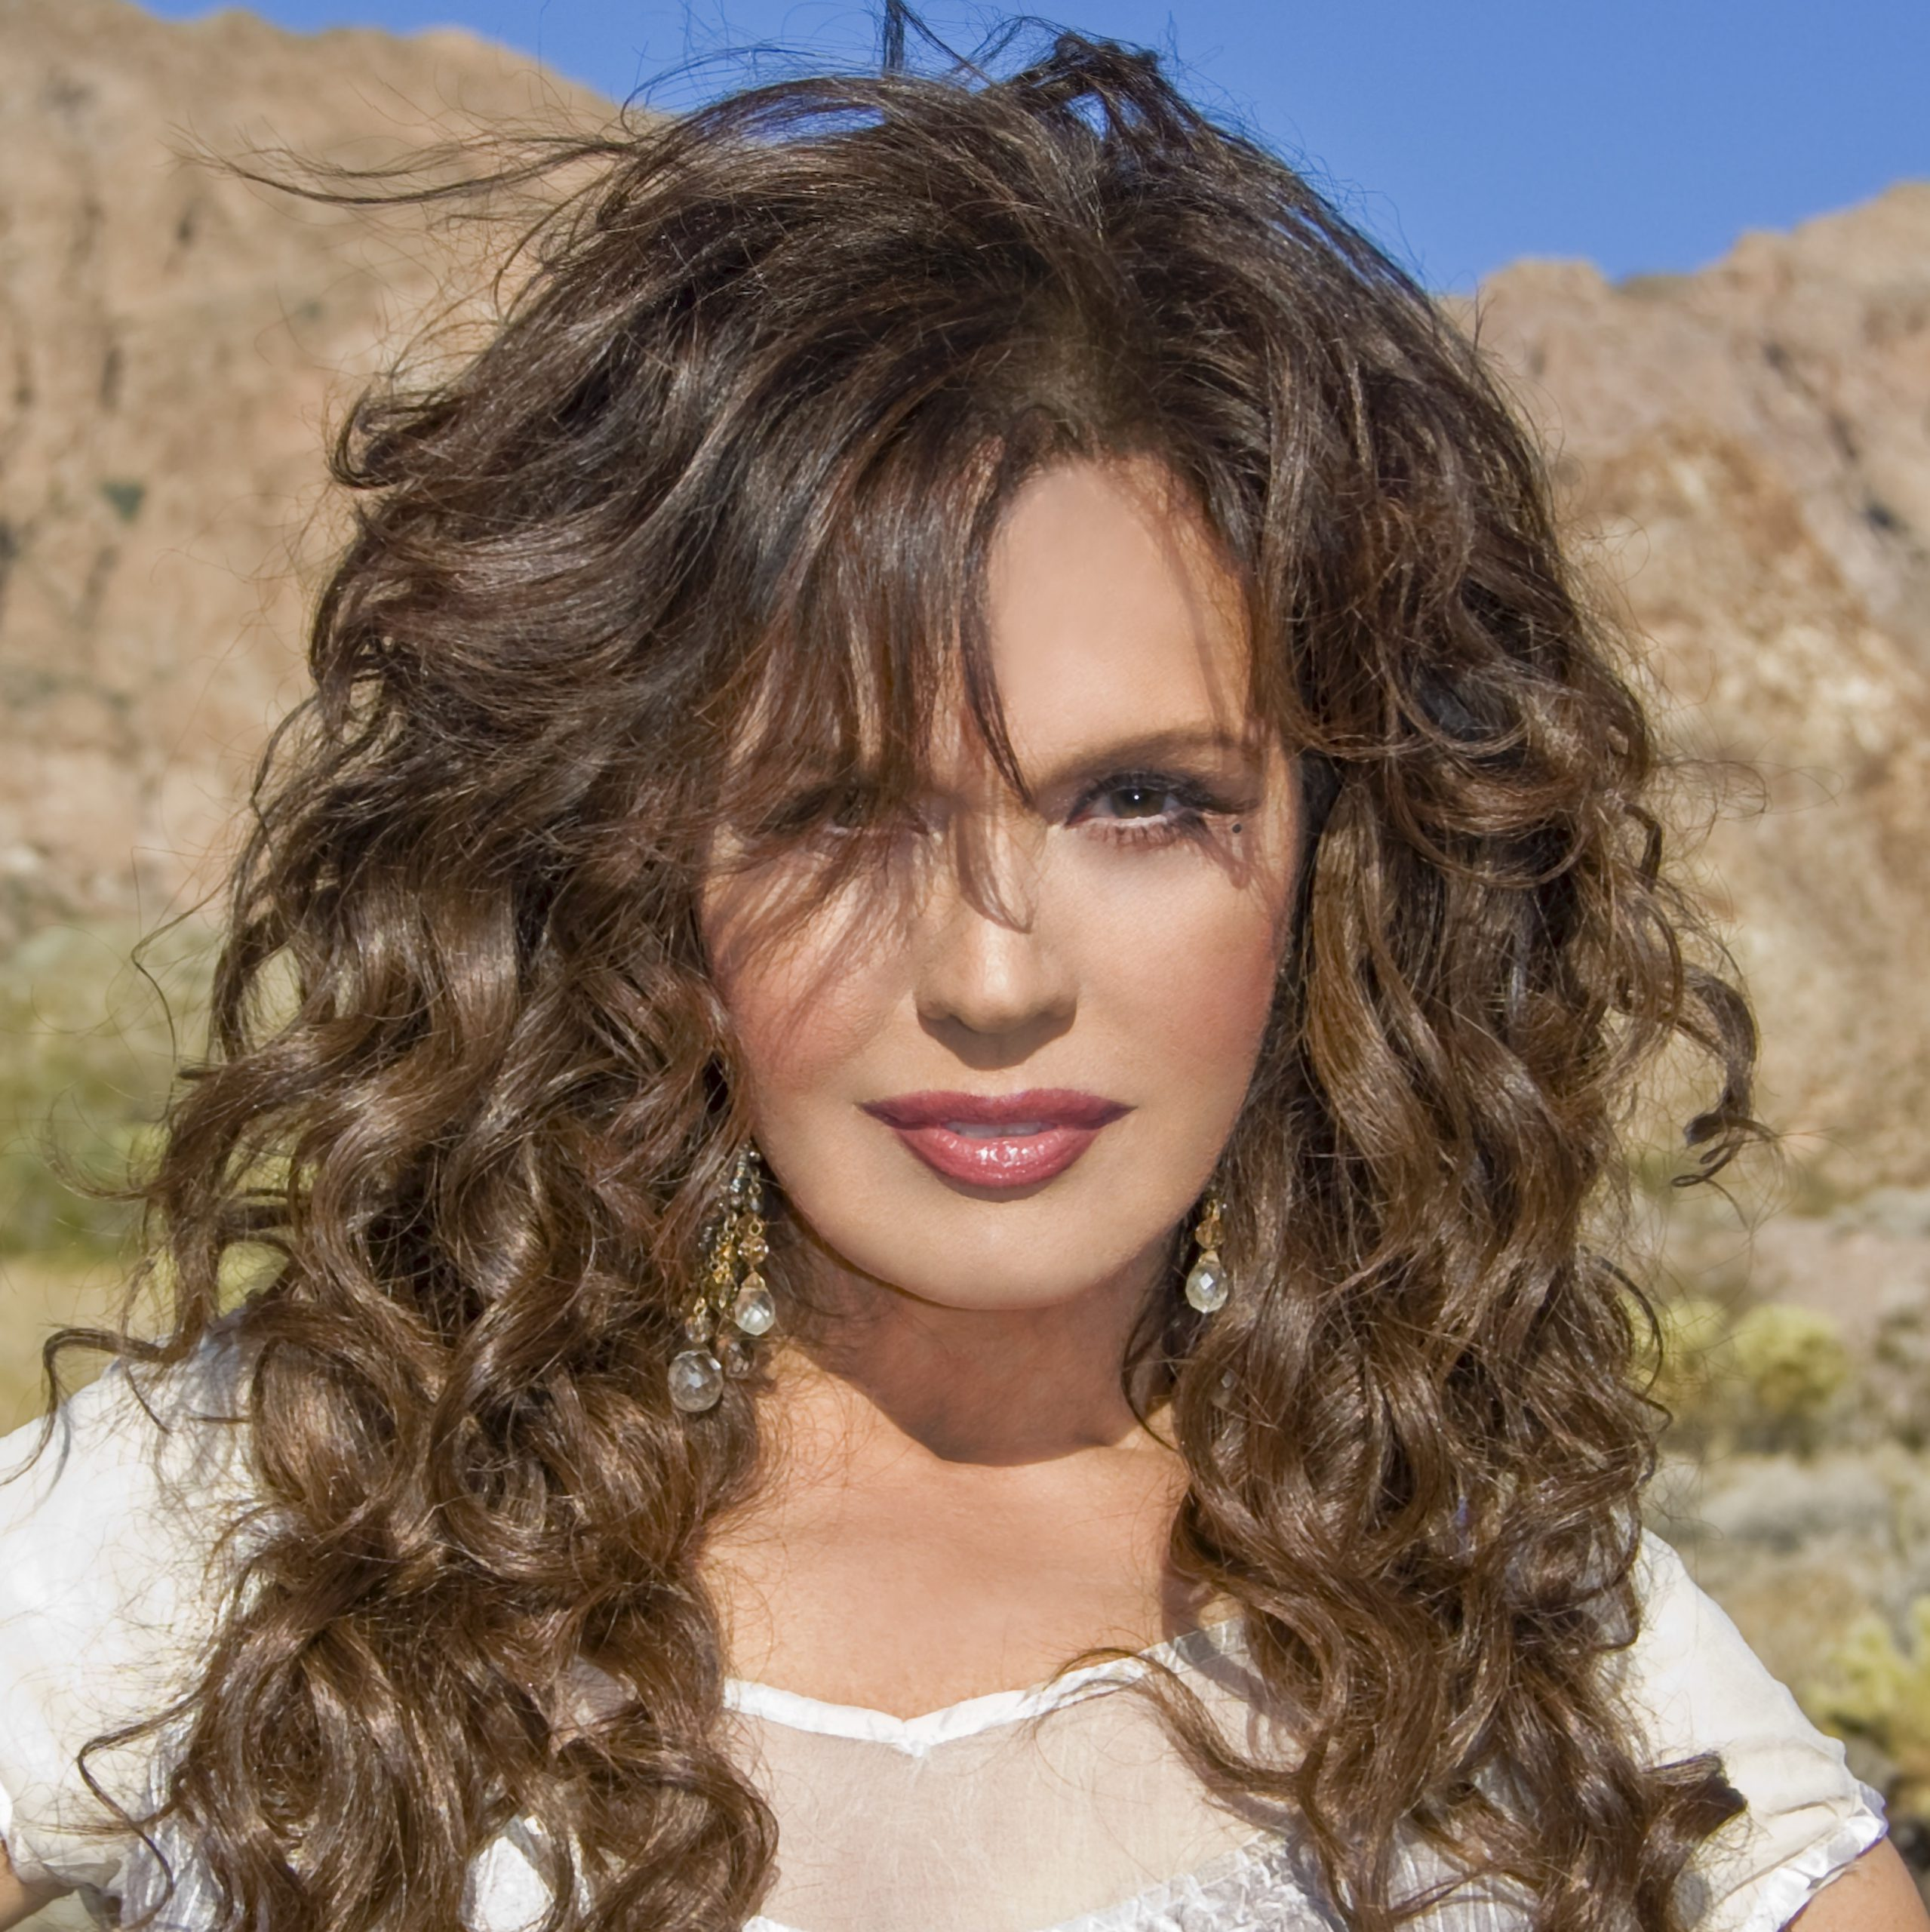 Marie Osmond's Educational Background: More Than Just the Nutrisystem Lady